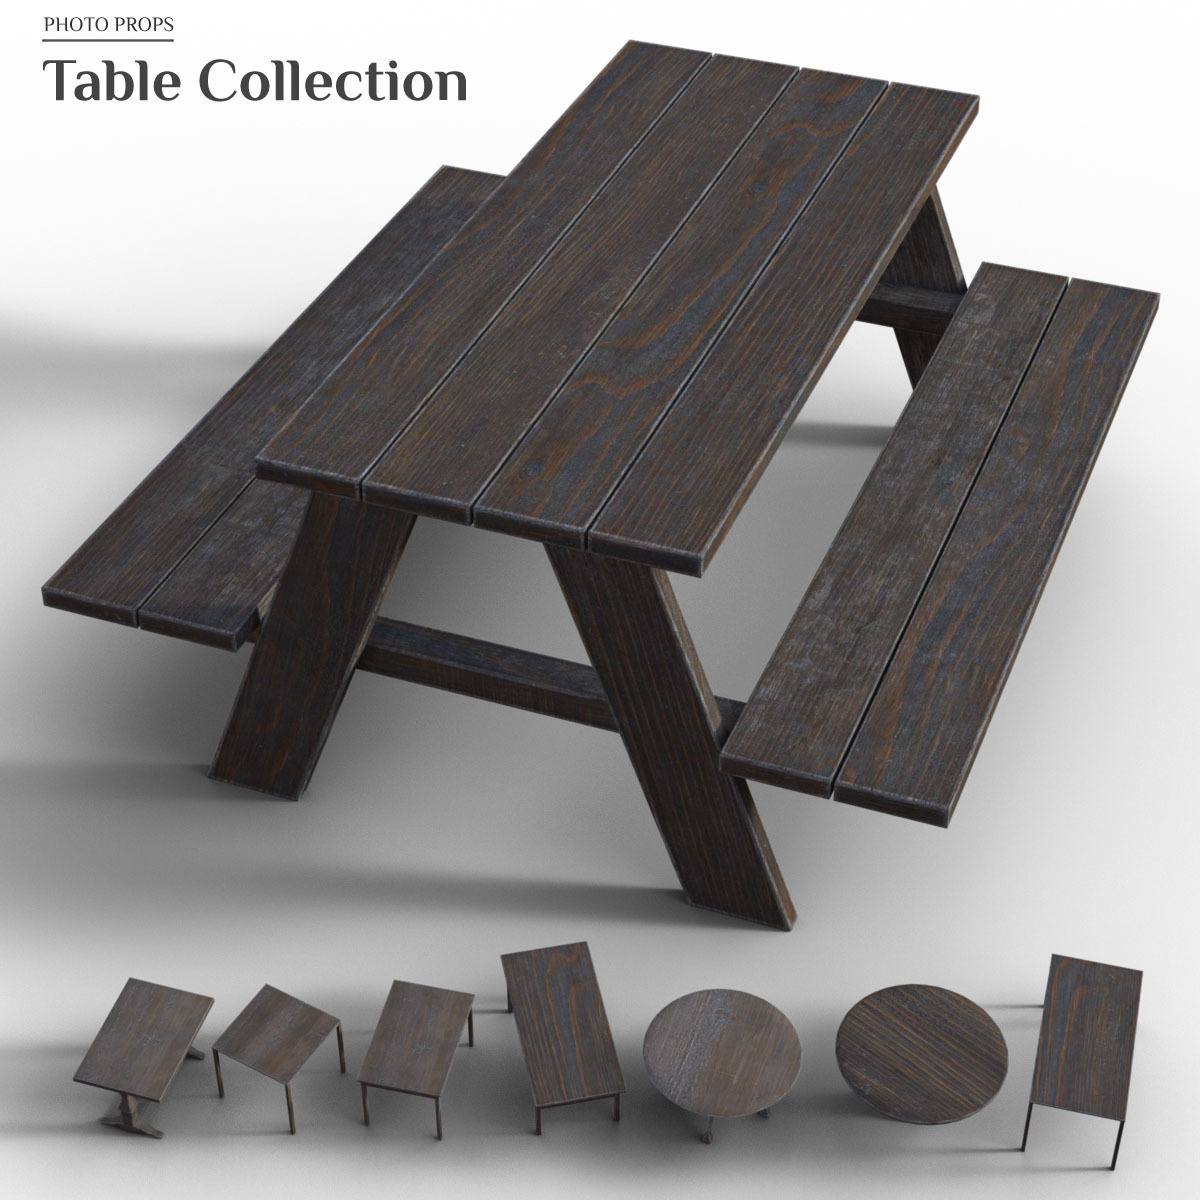 Photo Props: Table Collection